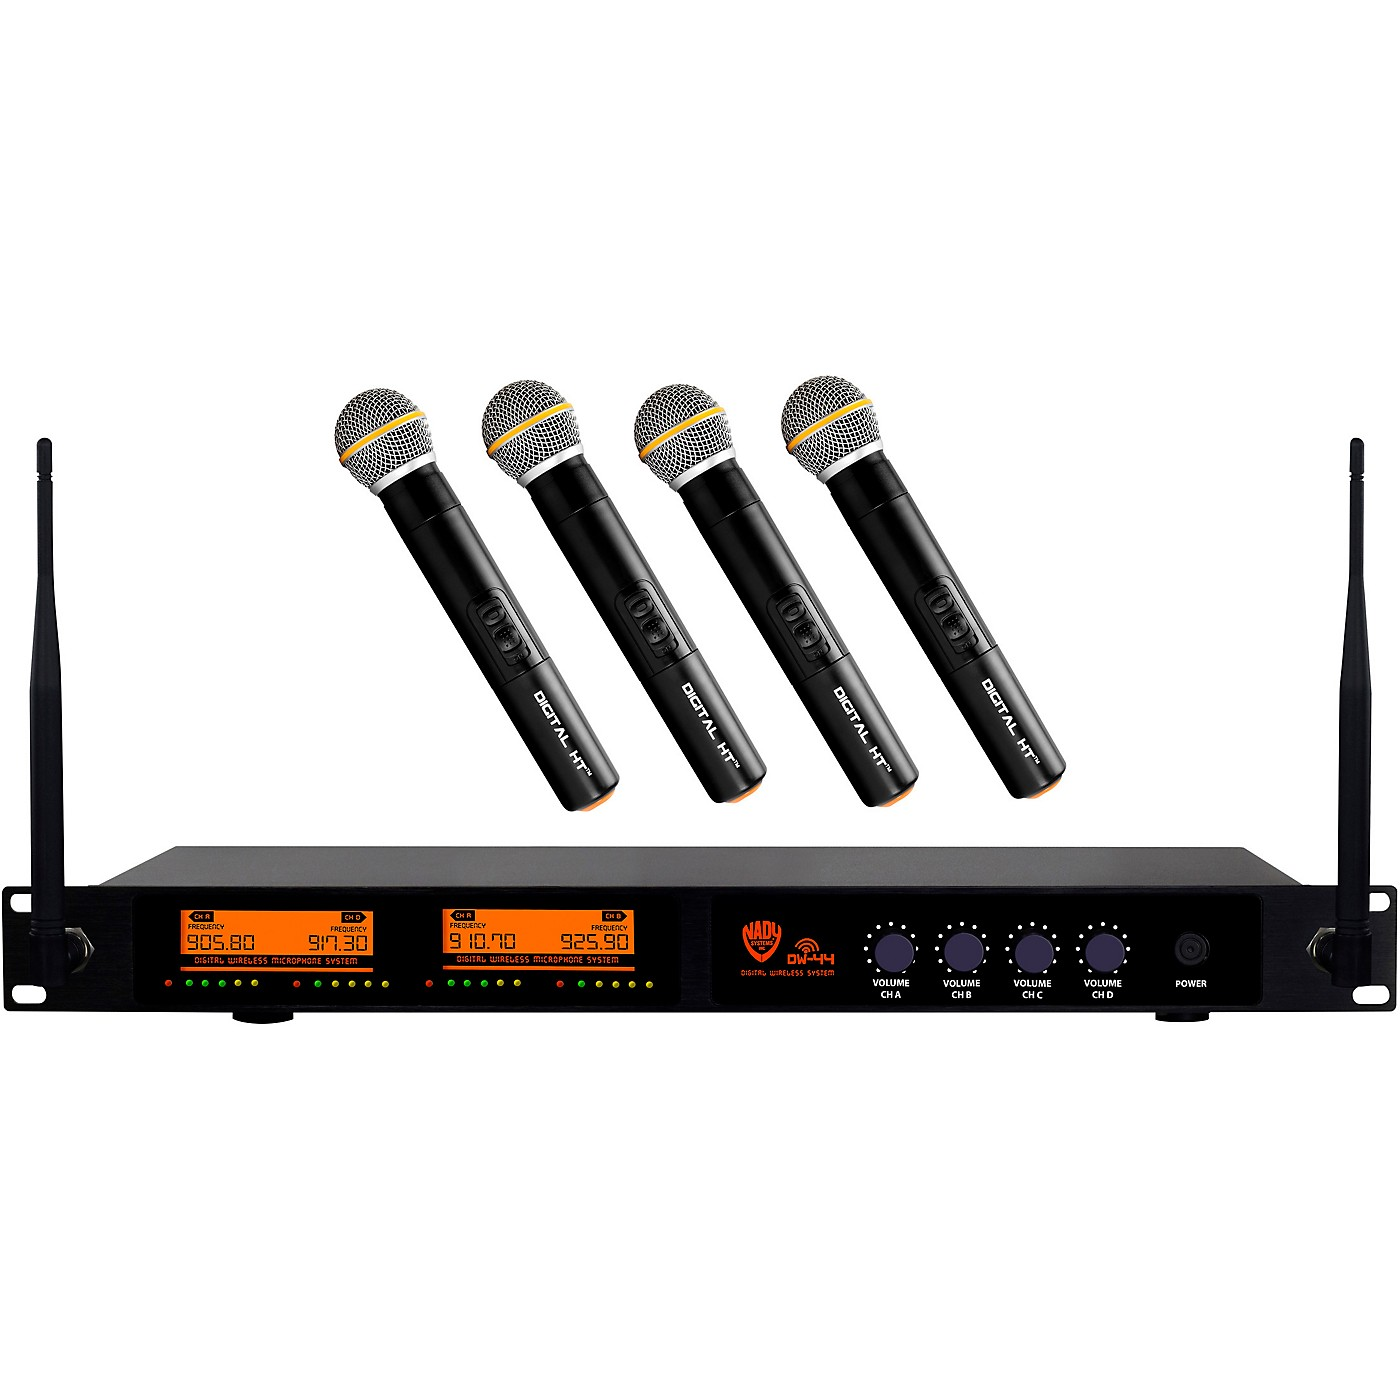 Nady DW-44 Quad Digital Wireless Handheld Microphone System with Four Fixed UHF Frequencies with QPSK Modulation thumbnail